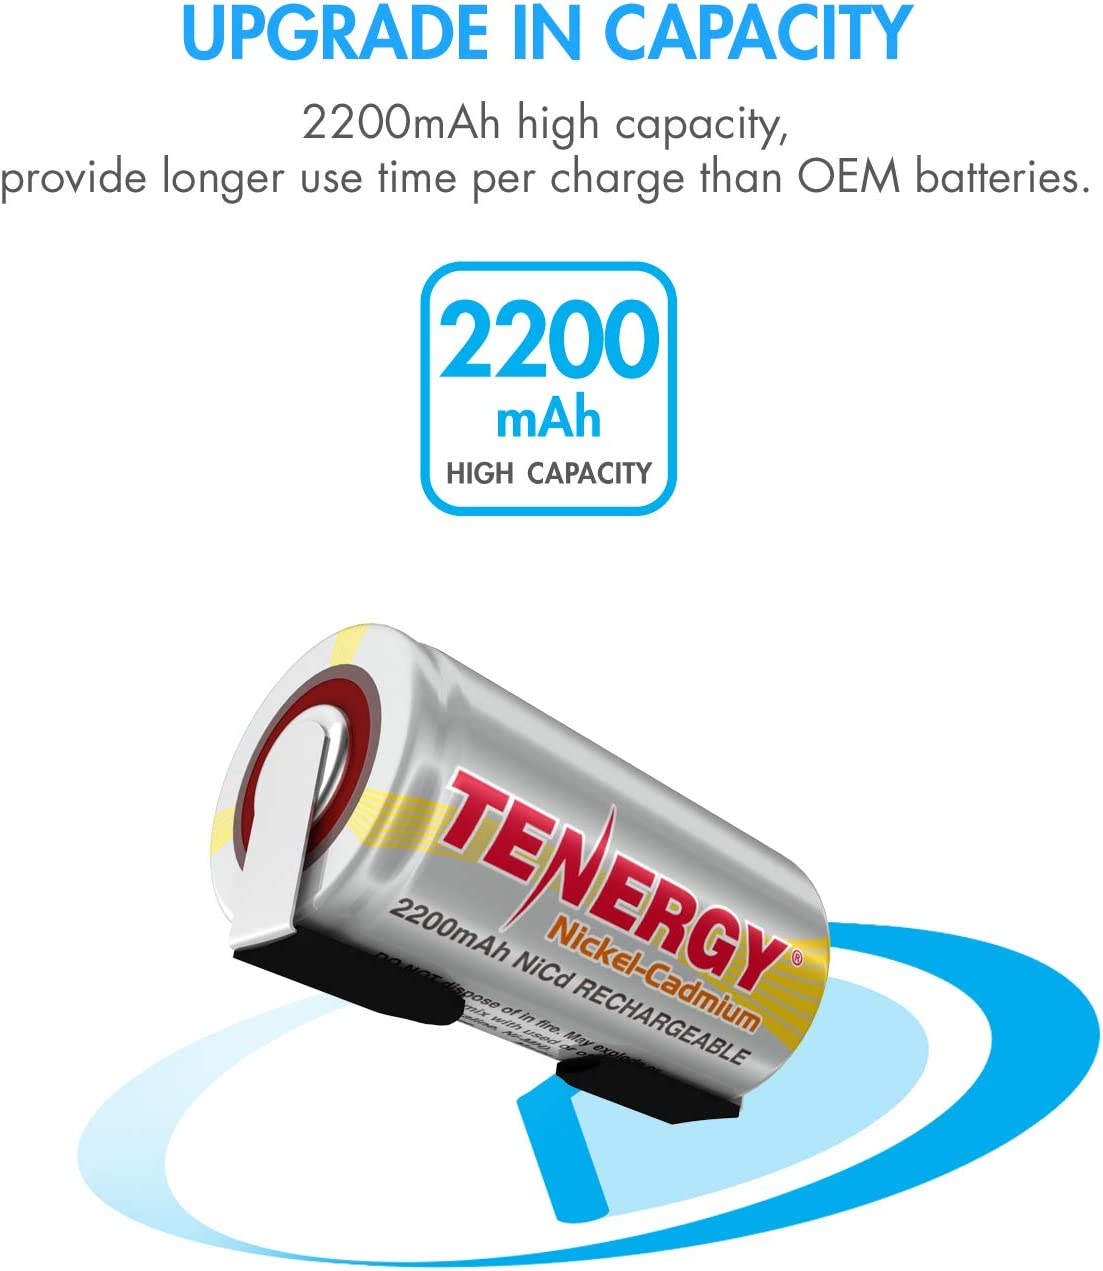 60 Pack Tenergy 2200mAh Sub C NiCd Battery for Power Tools 1.2V Flat Top Rechargeable Sub-C Cell Batteries with Tabs